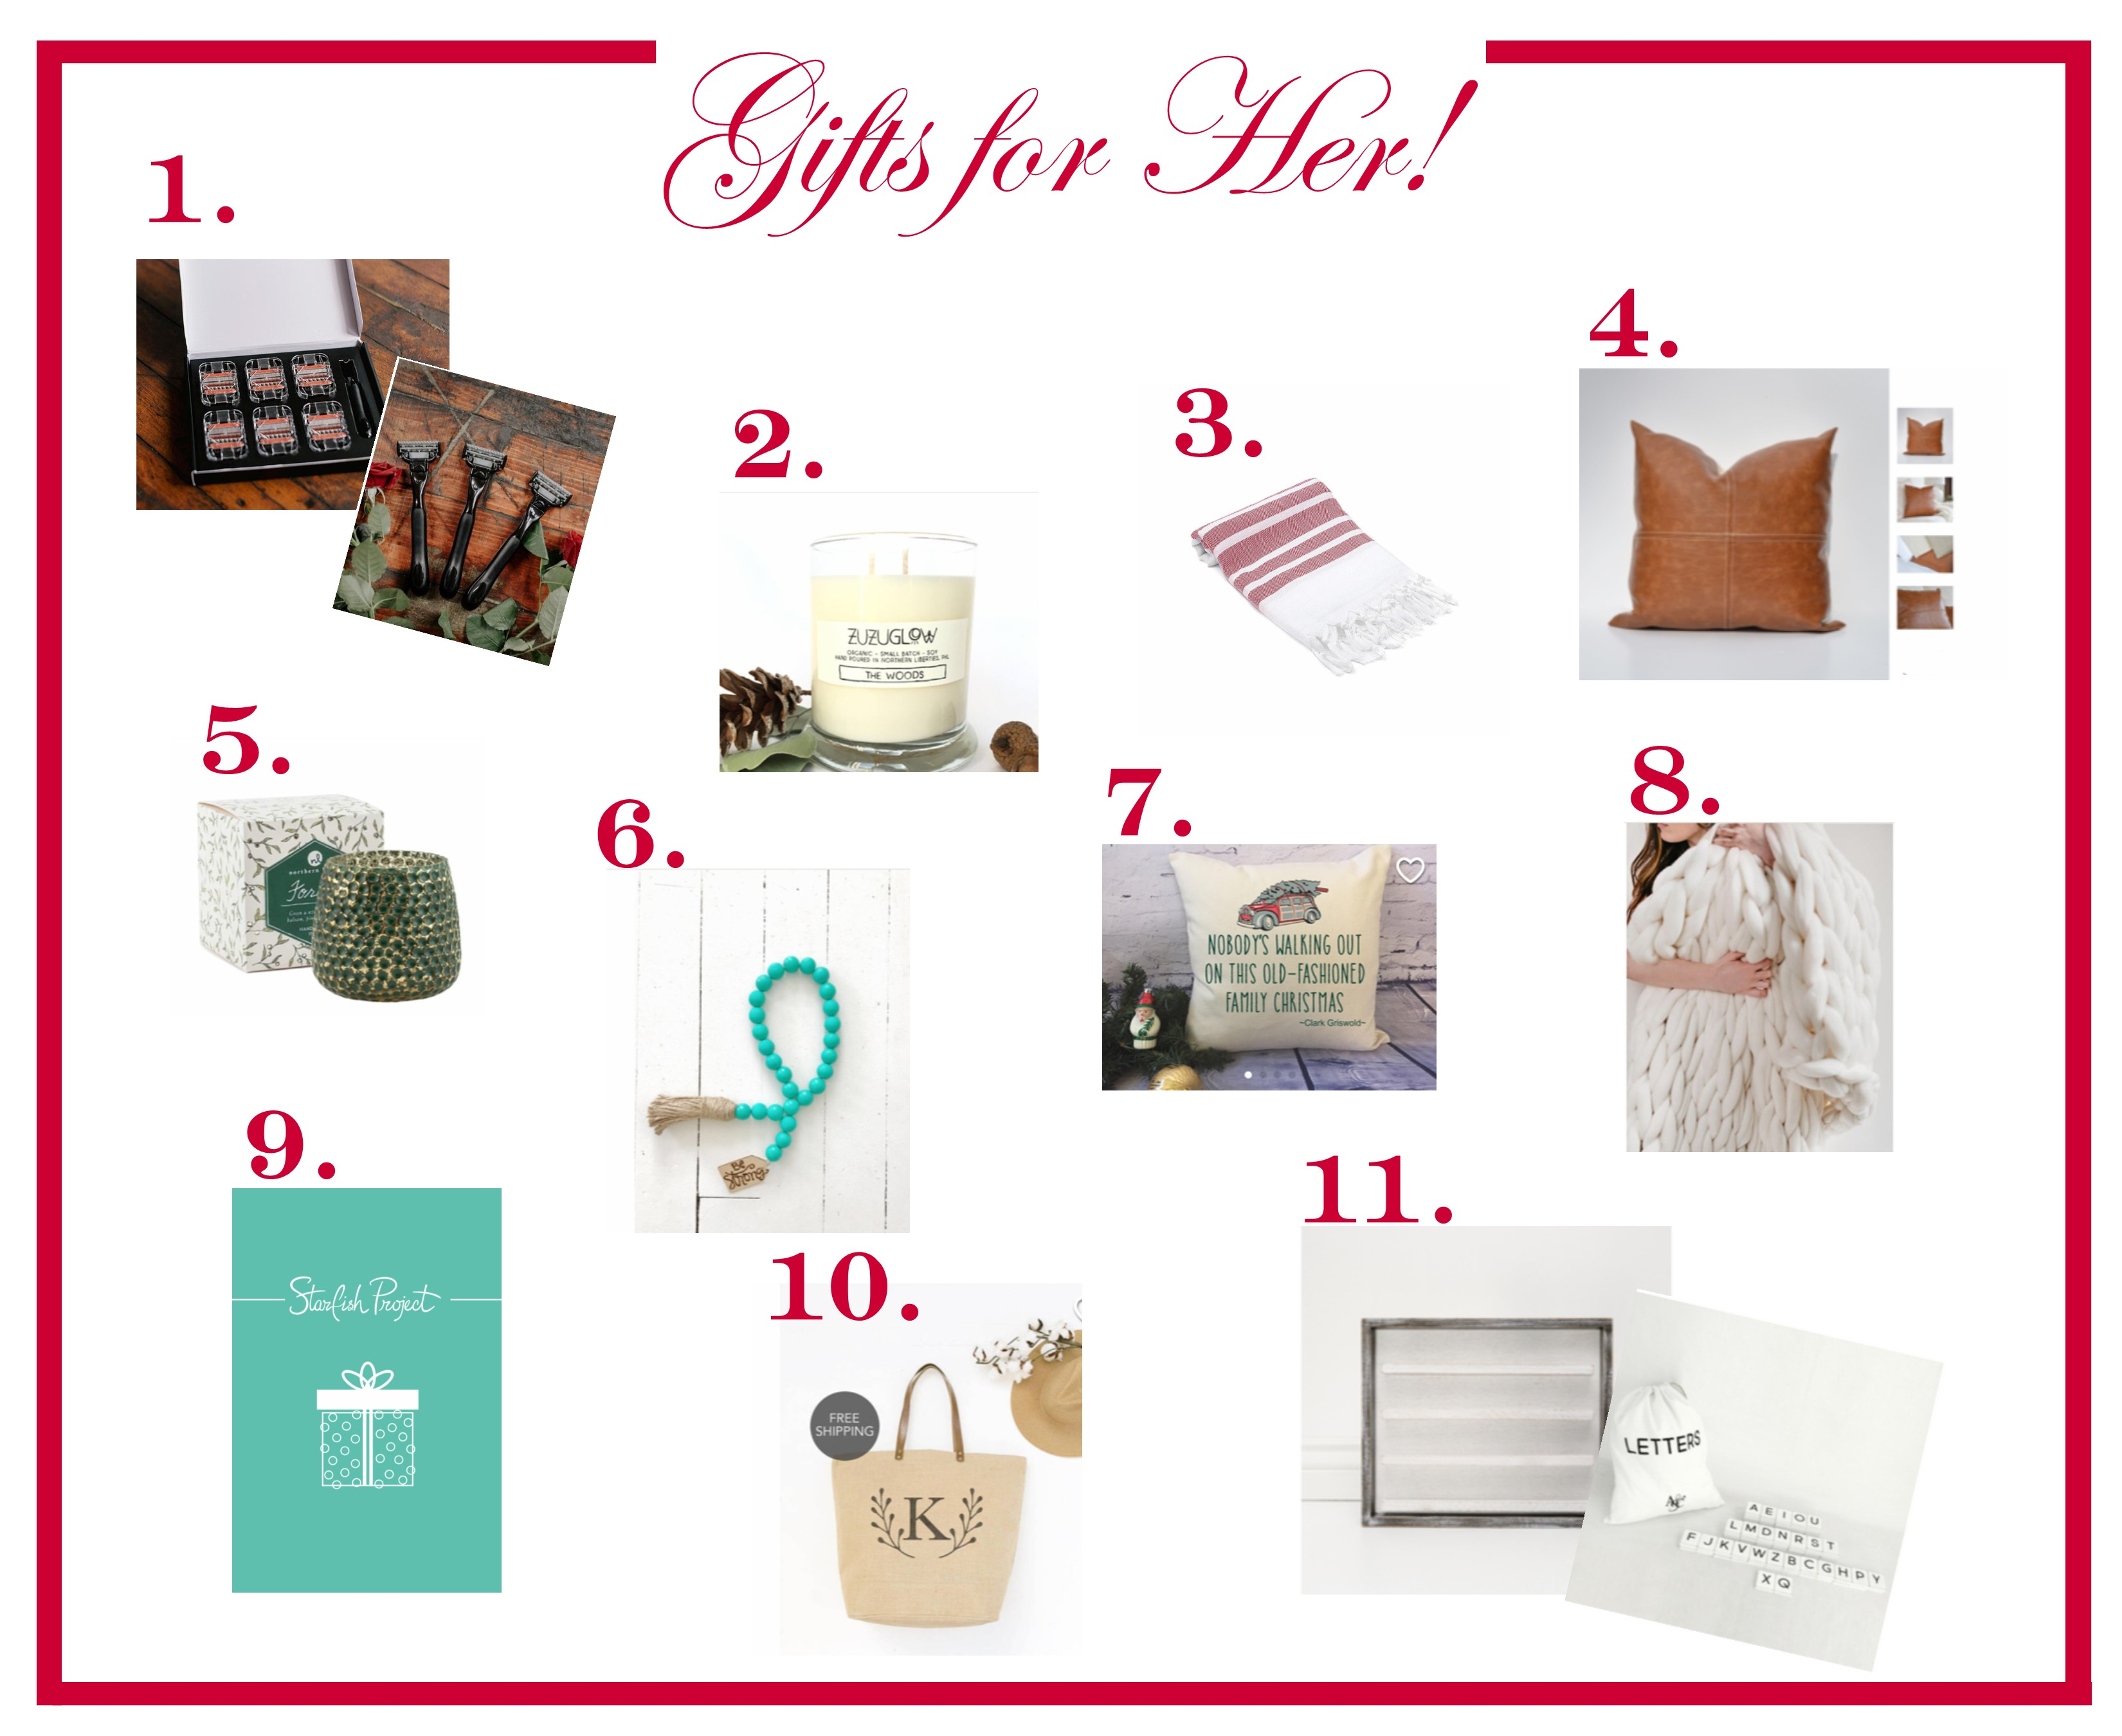 2017 Gifts for HER!